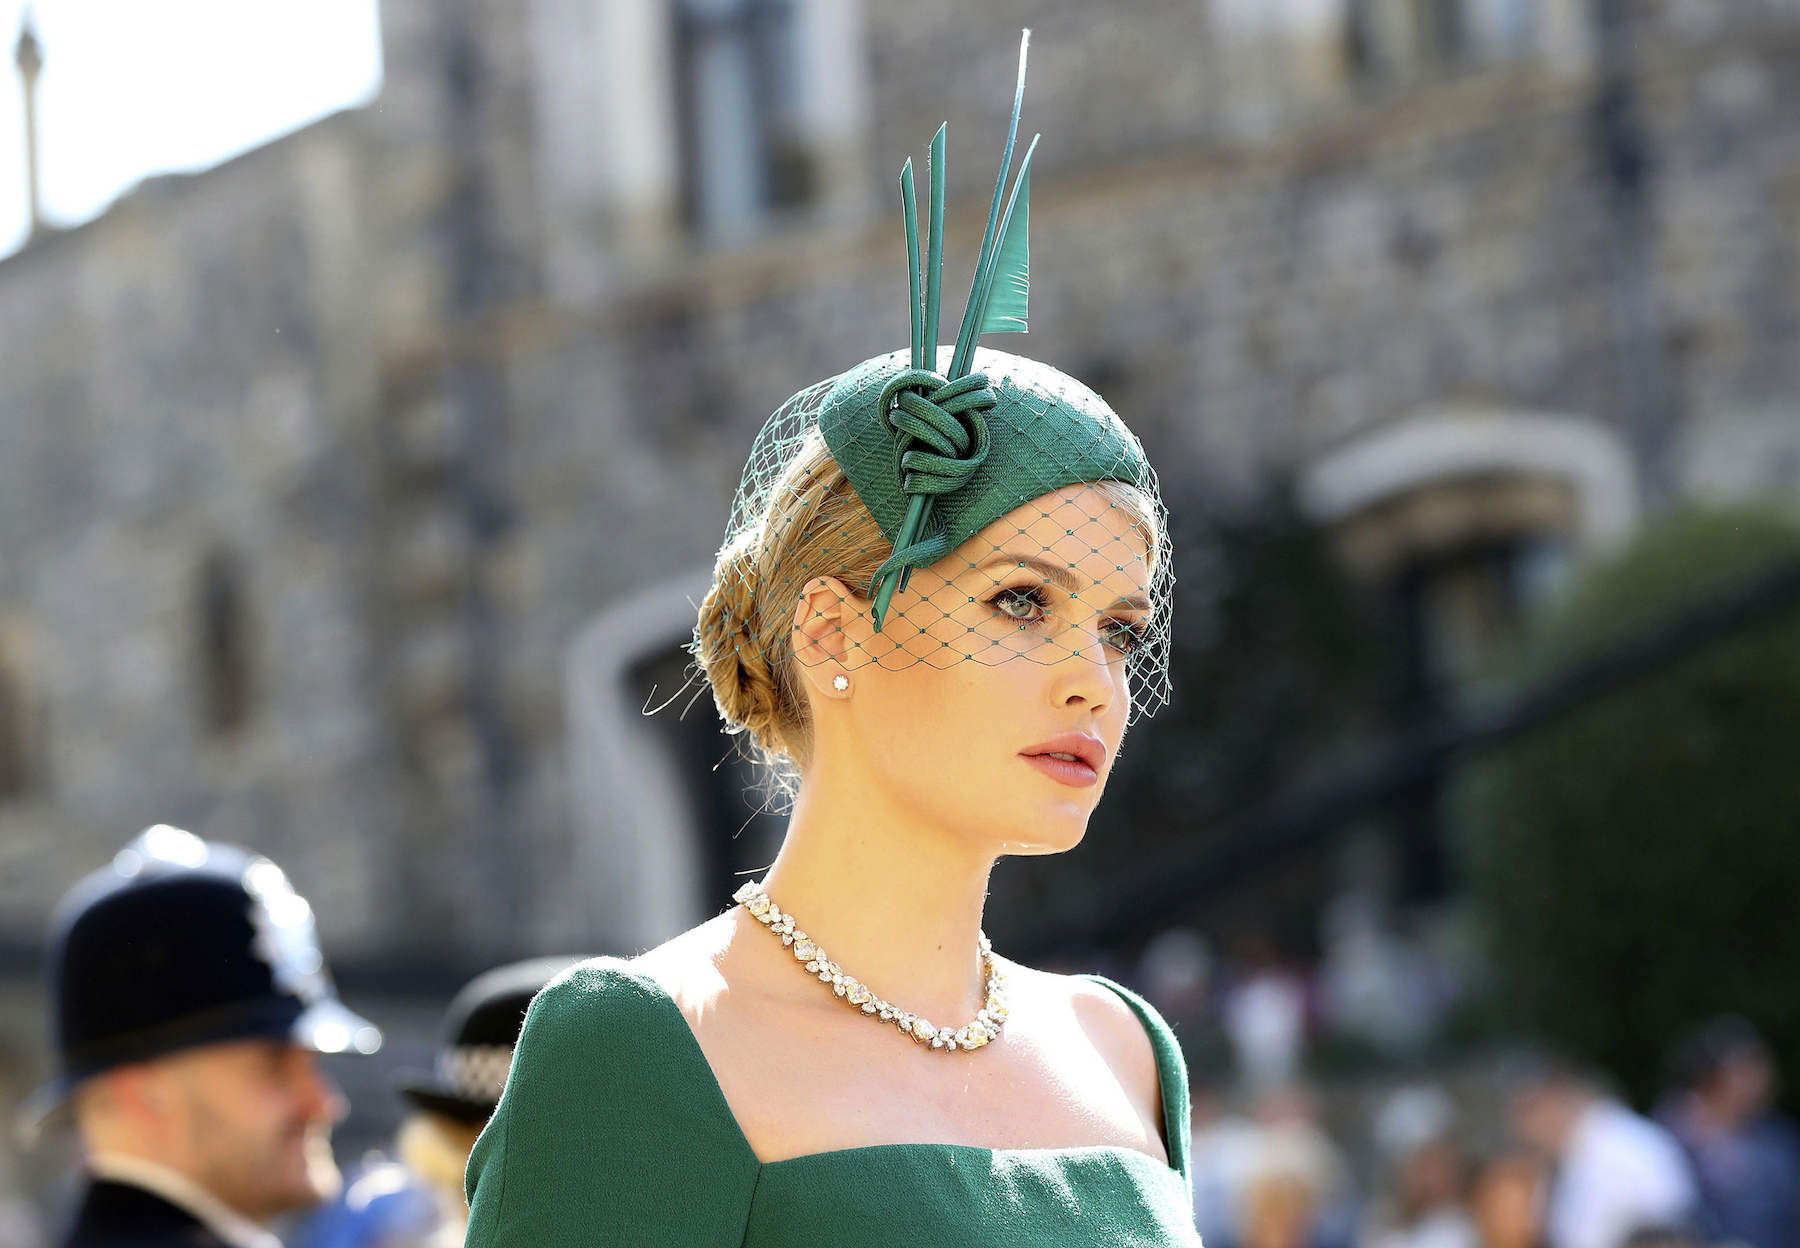 <div class='meta'><div class='origin-logo' data-origin='AP'></div><span class='caption-text' data-credit='Gareth Fuller/PA Wire'>Lady Kitty Spencer arrives at St George's Chapel at Windsor Castle for the wedding of Meghan Markle and Prince Harry.</span></div>